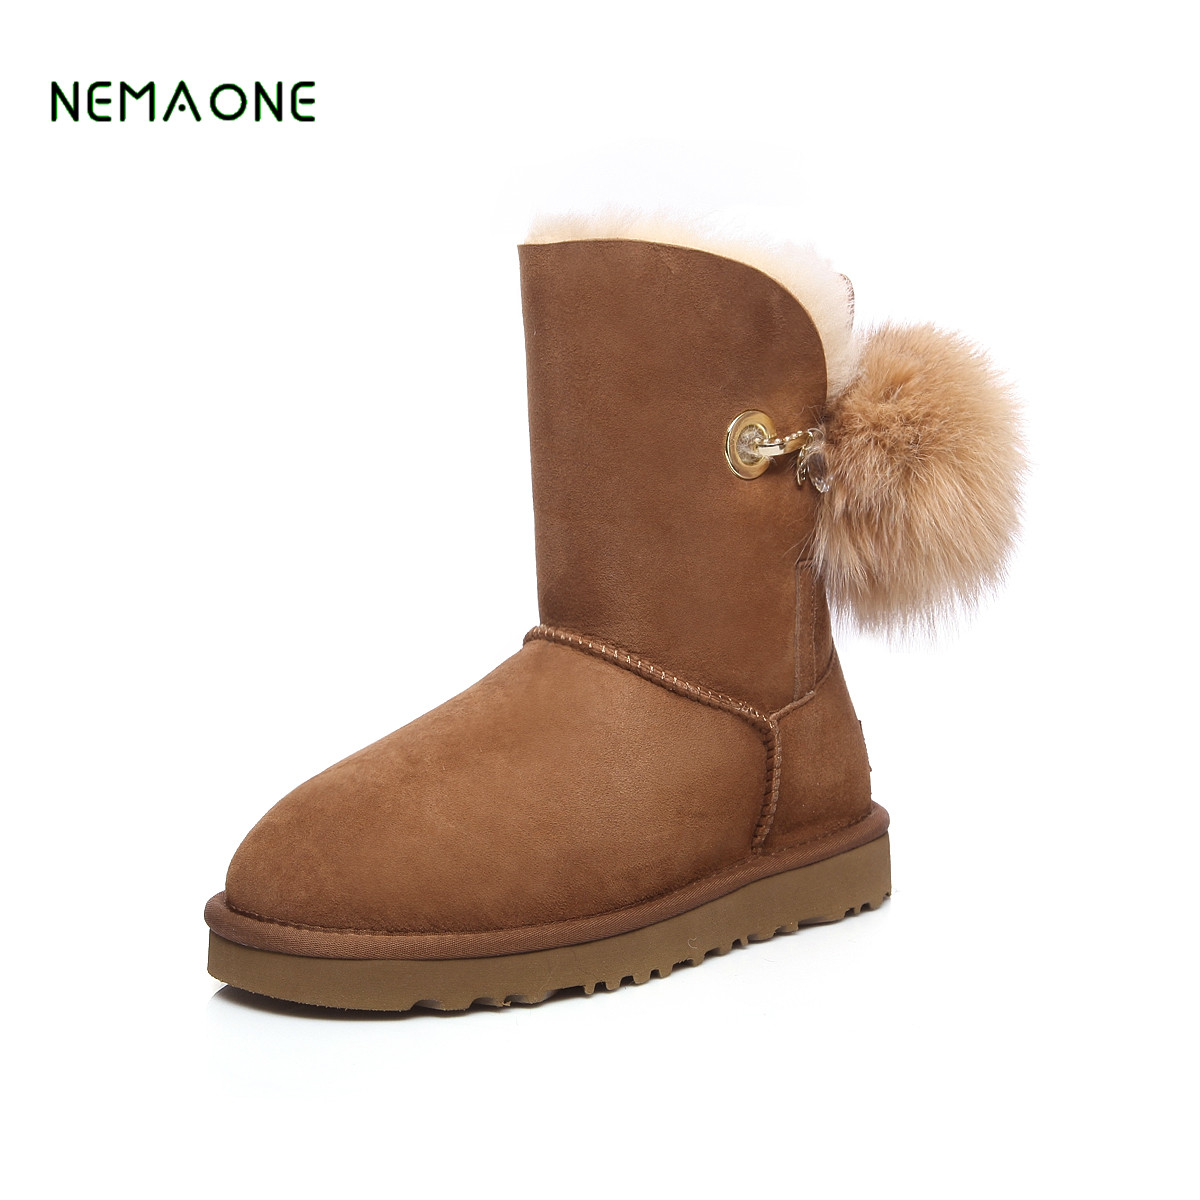 NEMAONE 2017 Genuine Leather Snow Boots Winter Shoes for Women New Arrival 100% Real Fur Classic Mujer Botas Waterproof high quality black laser toner powder for hp ce285 cc364 p 1102 1102w m 1132 1212 1214 1217 4015 4515 free shipping by dhl fedex